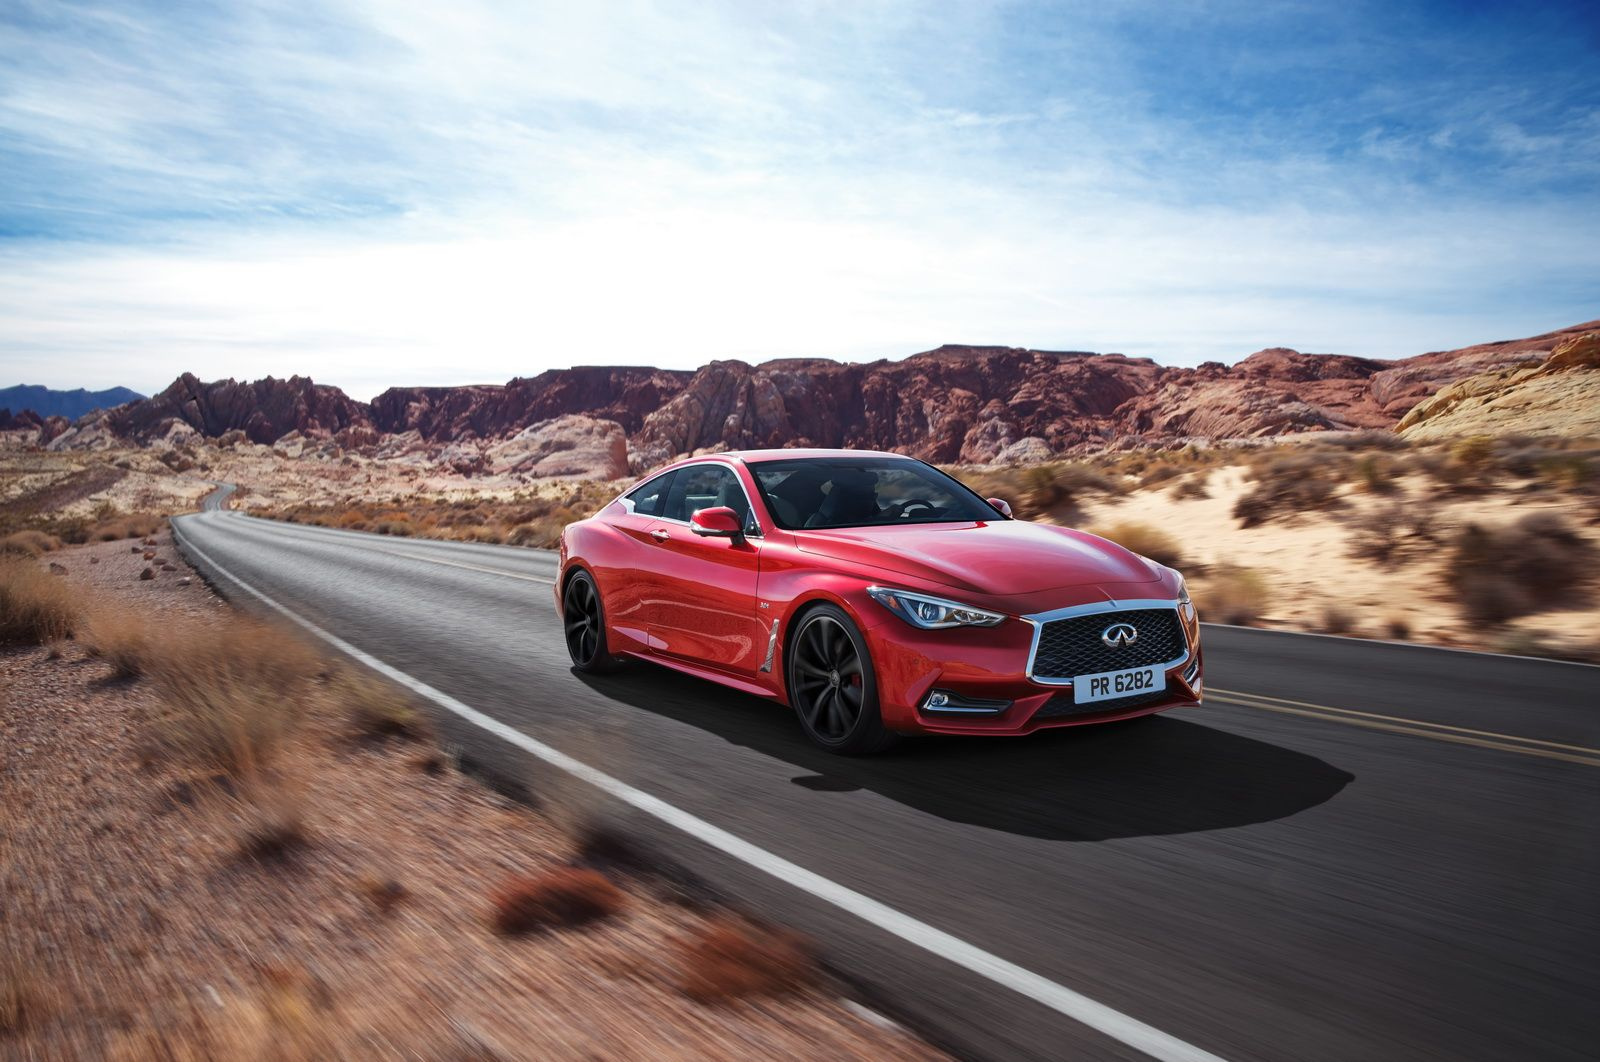 2016 detroit infiniti showcases the q60 coupe following the concept preview that took place in